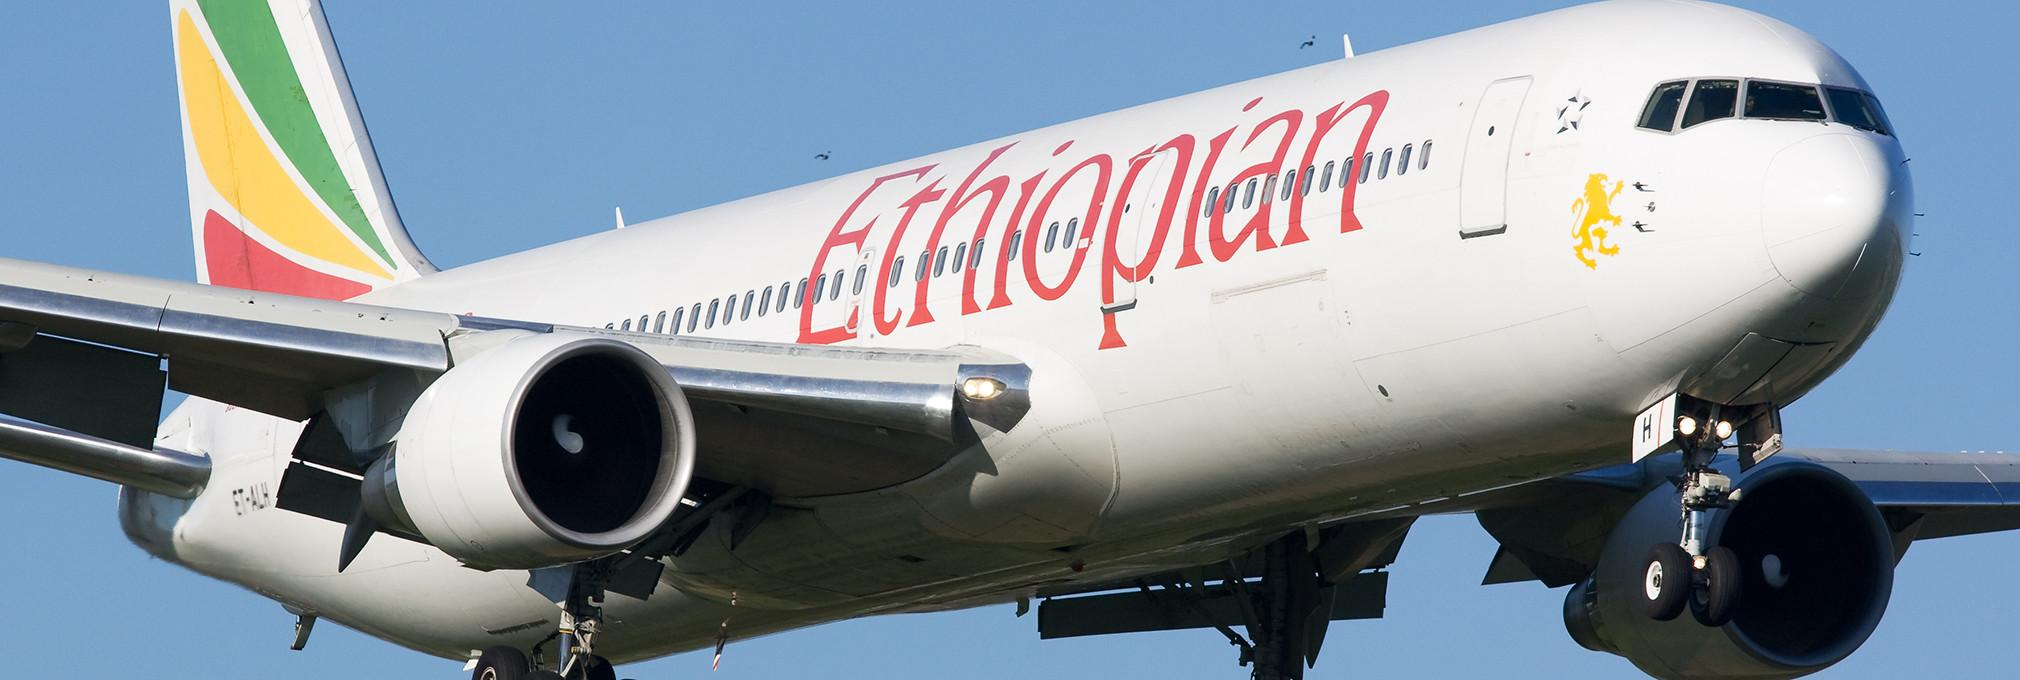 Ethiopian Airlines - Wikipedia